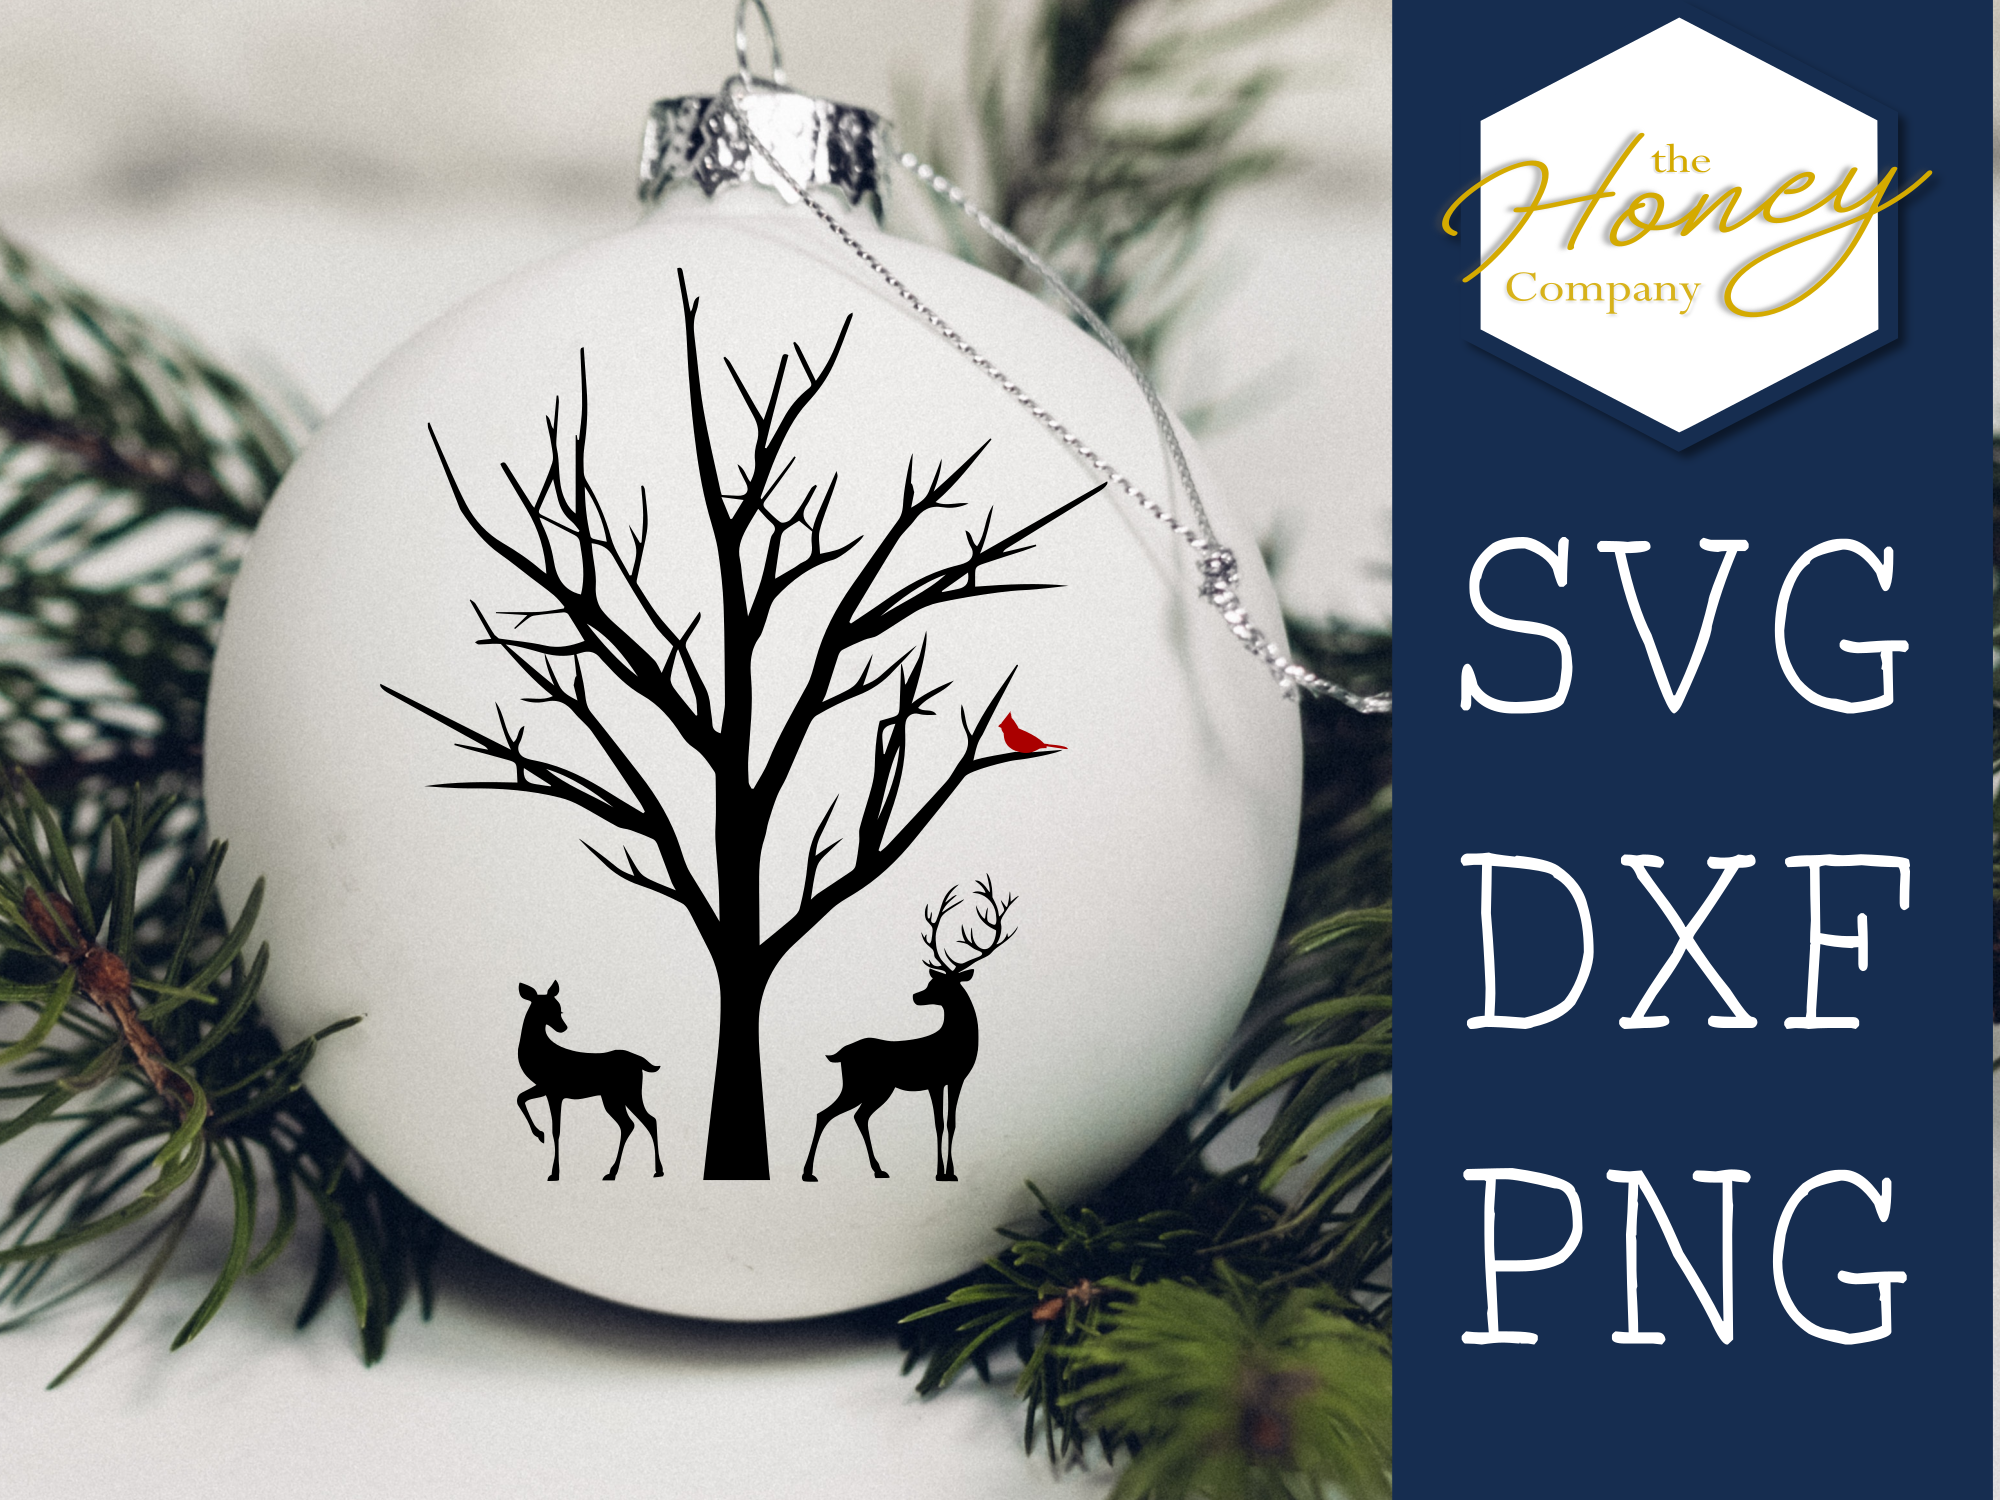 Download Free Deer Cardinal Winter Christmas Ornament Graphic By The Honey for Cricut Explore, Silhouette and other cutting machines.